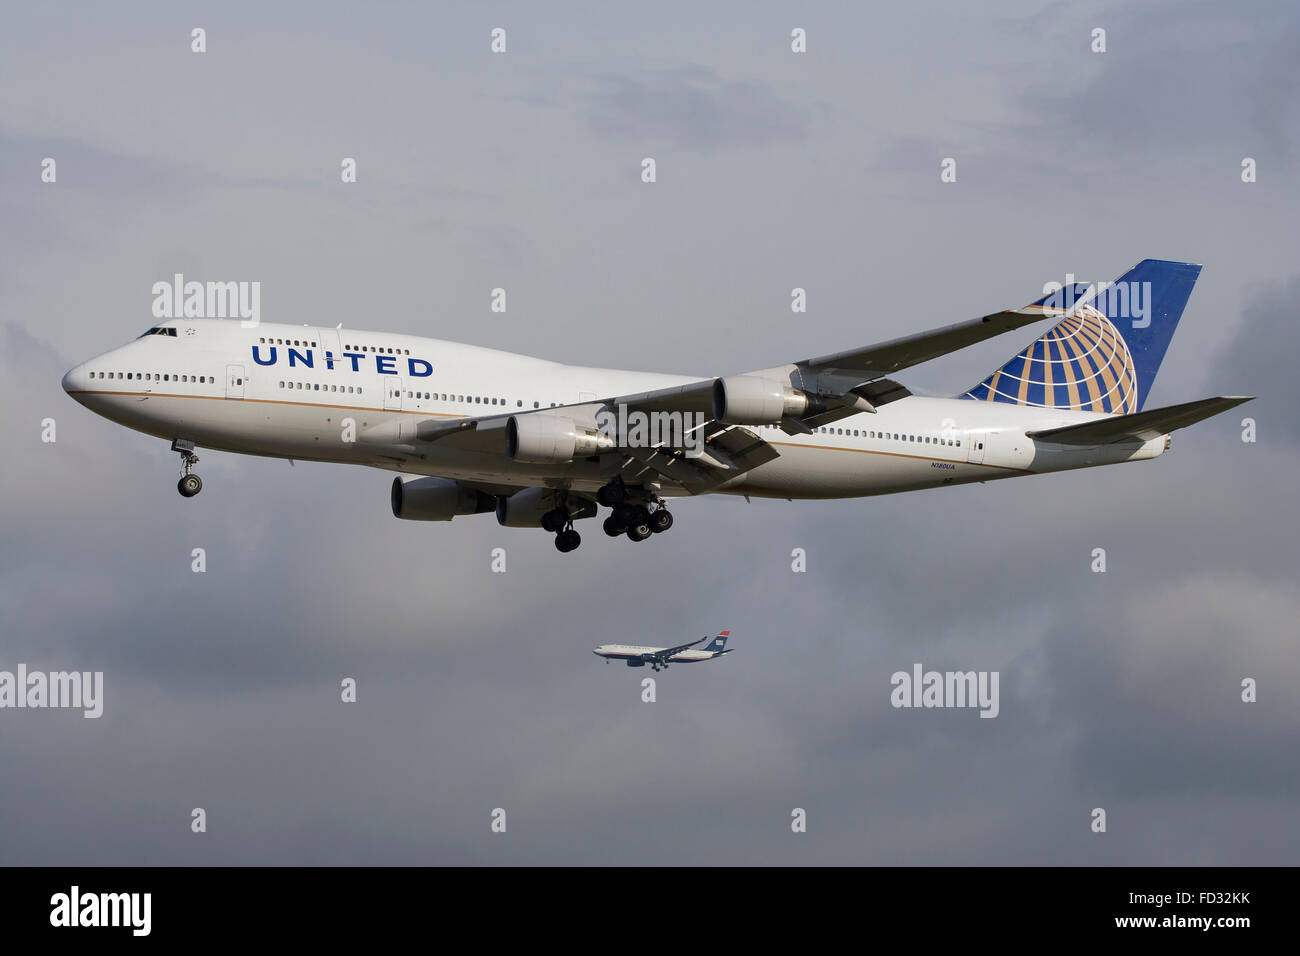 Stock Photo  United Airlines Boeing 747400 Landing In Frankfurt Parallel  To Us Airways A330